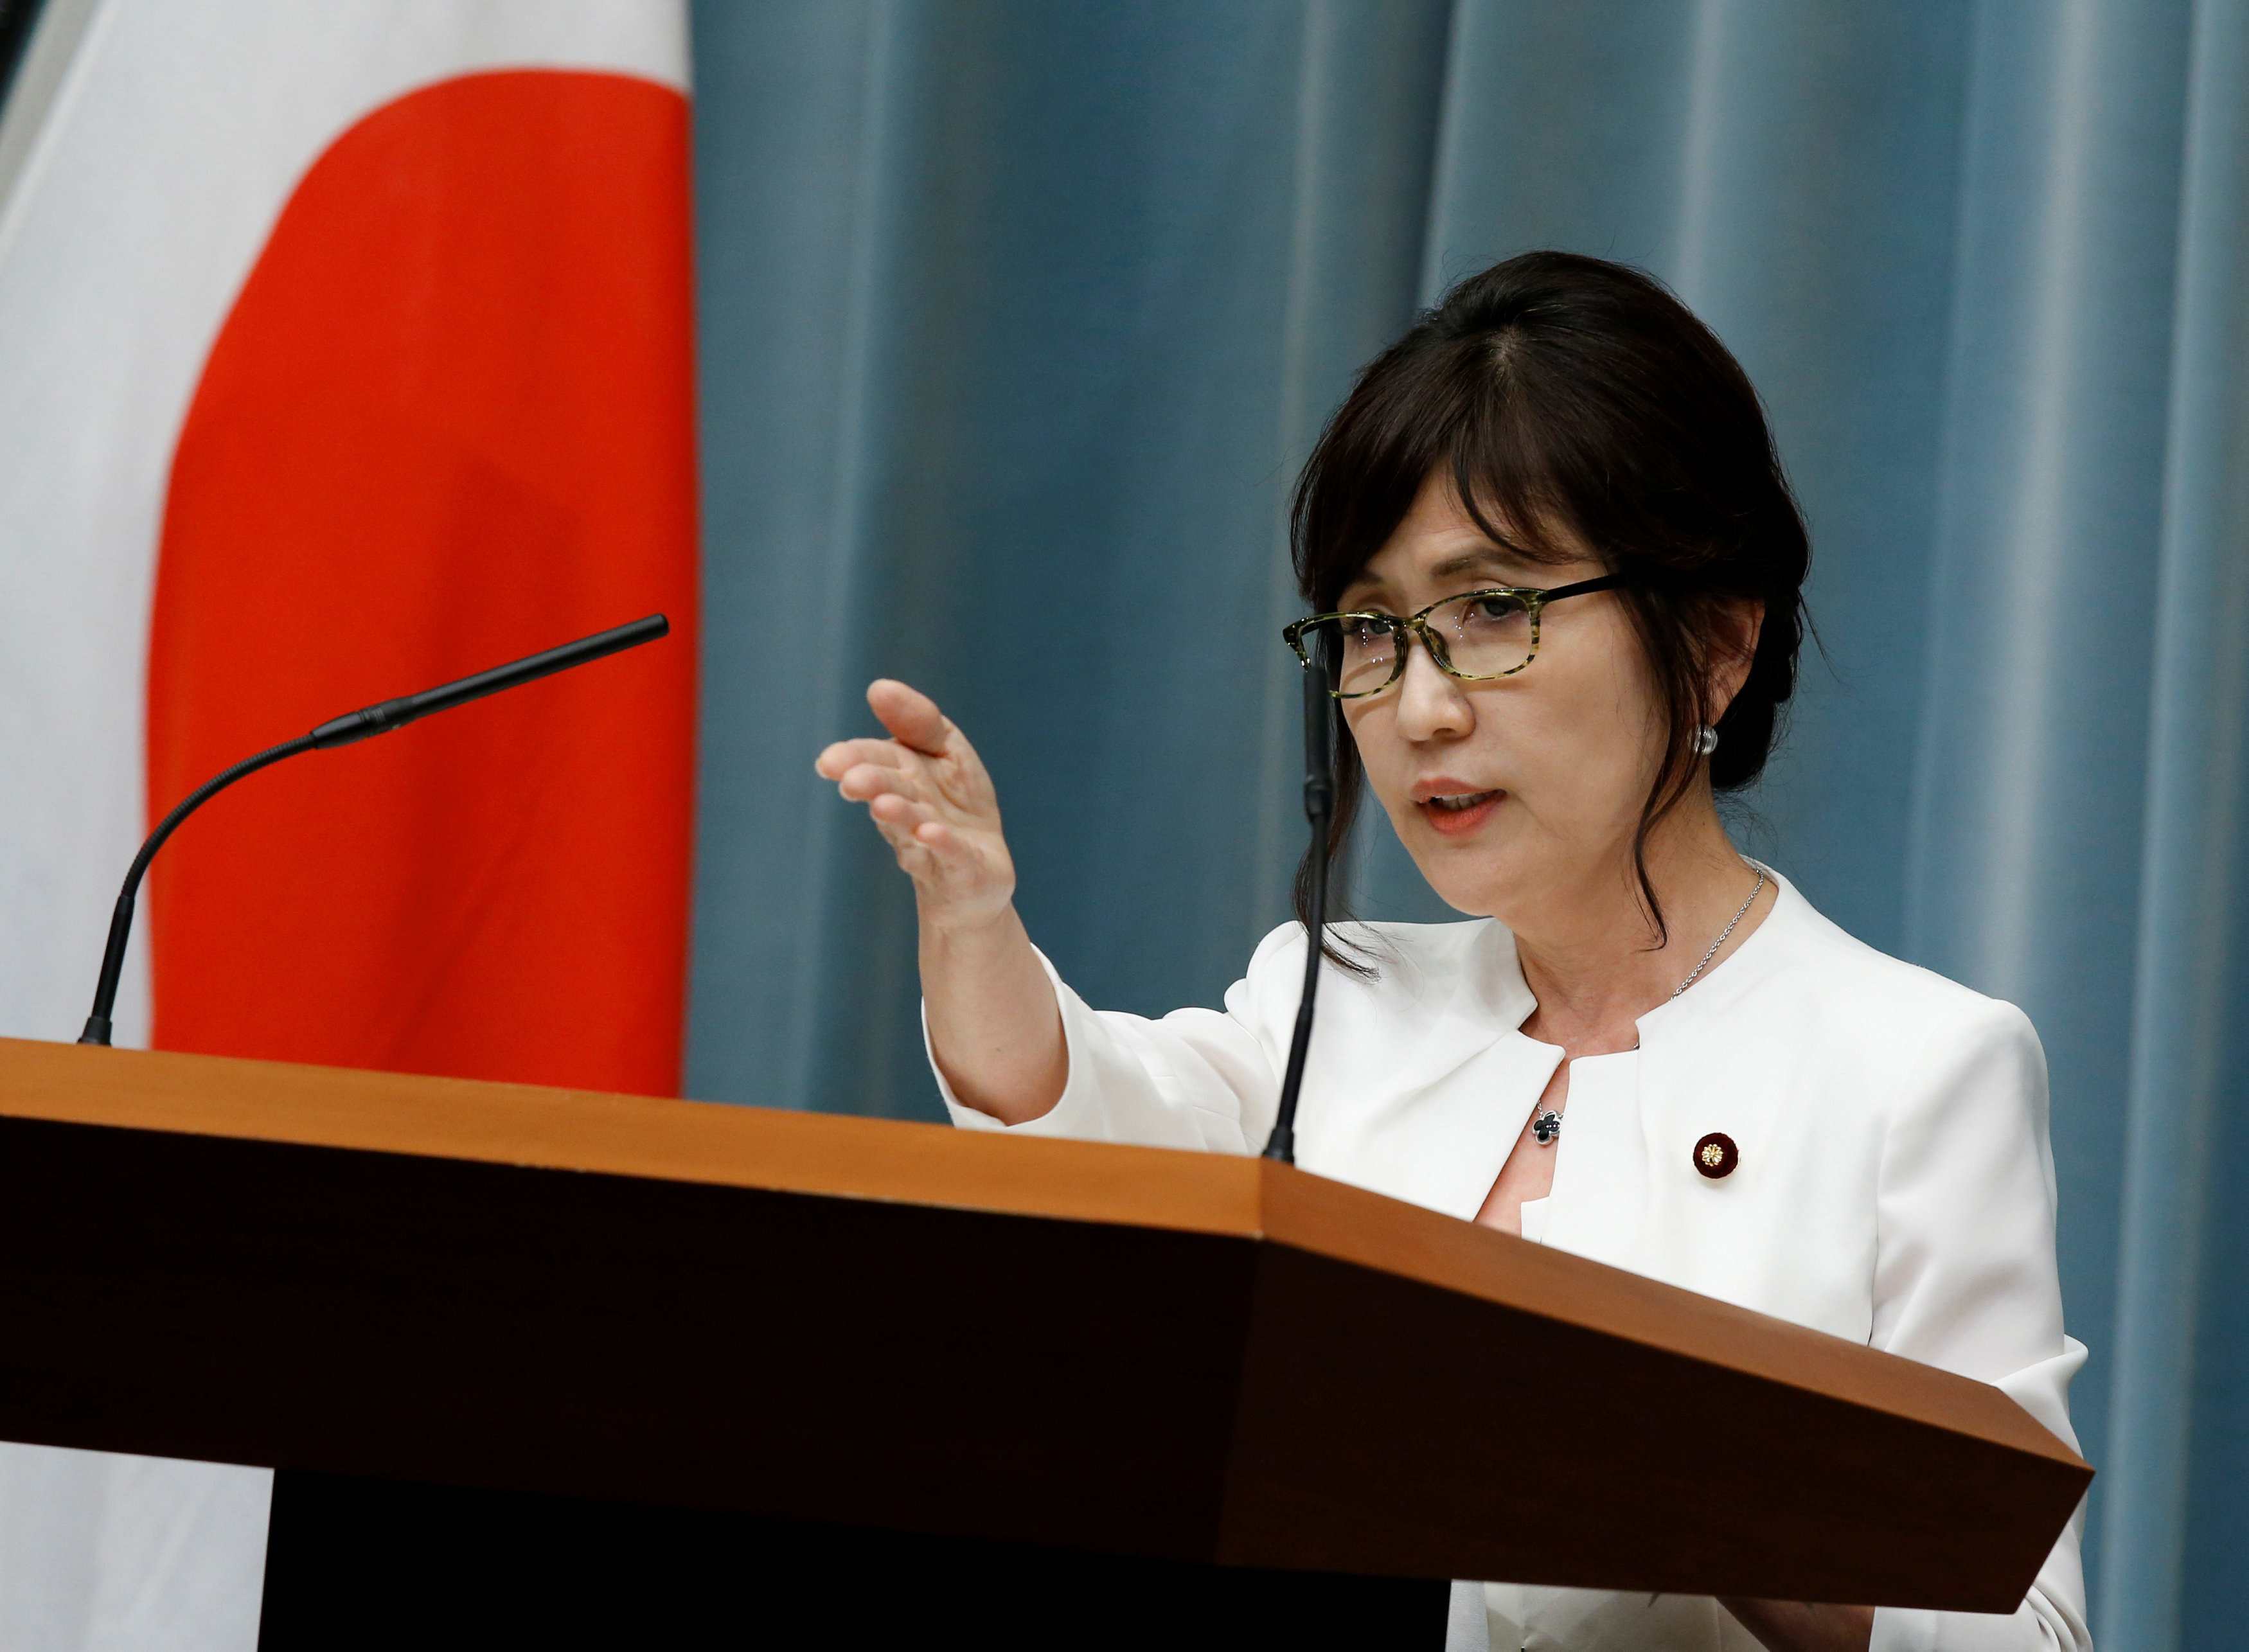 Japan's Defense Minister Tomomi Inada speaks at a news conference at Prime Minister Shinzo Abe's official residence in Tokyo, Japan, August 3, 2016. REUTERS/Kim Kyung-Hoon